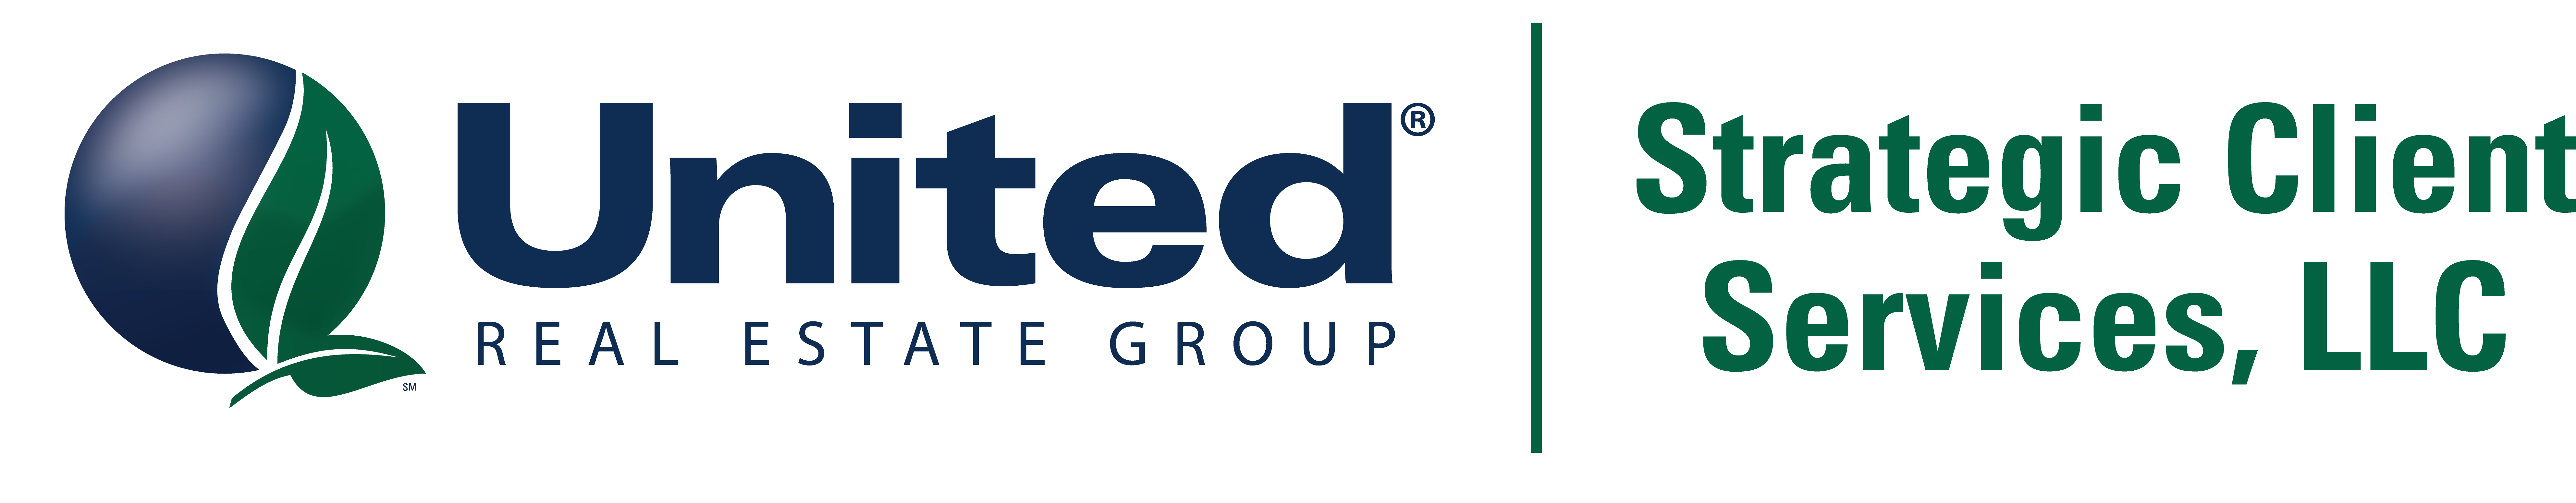 United_Group SCS_Combined_H